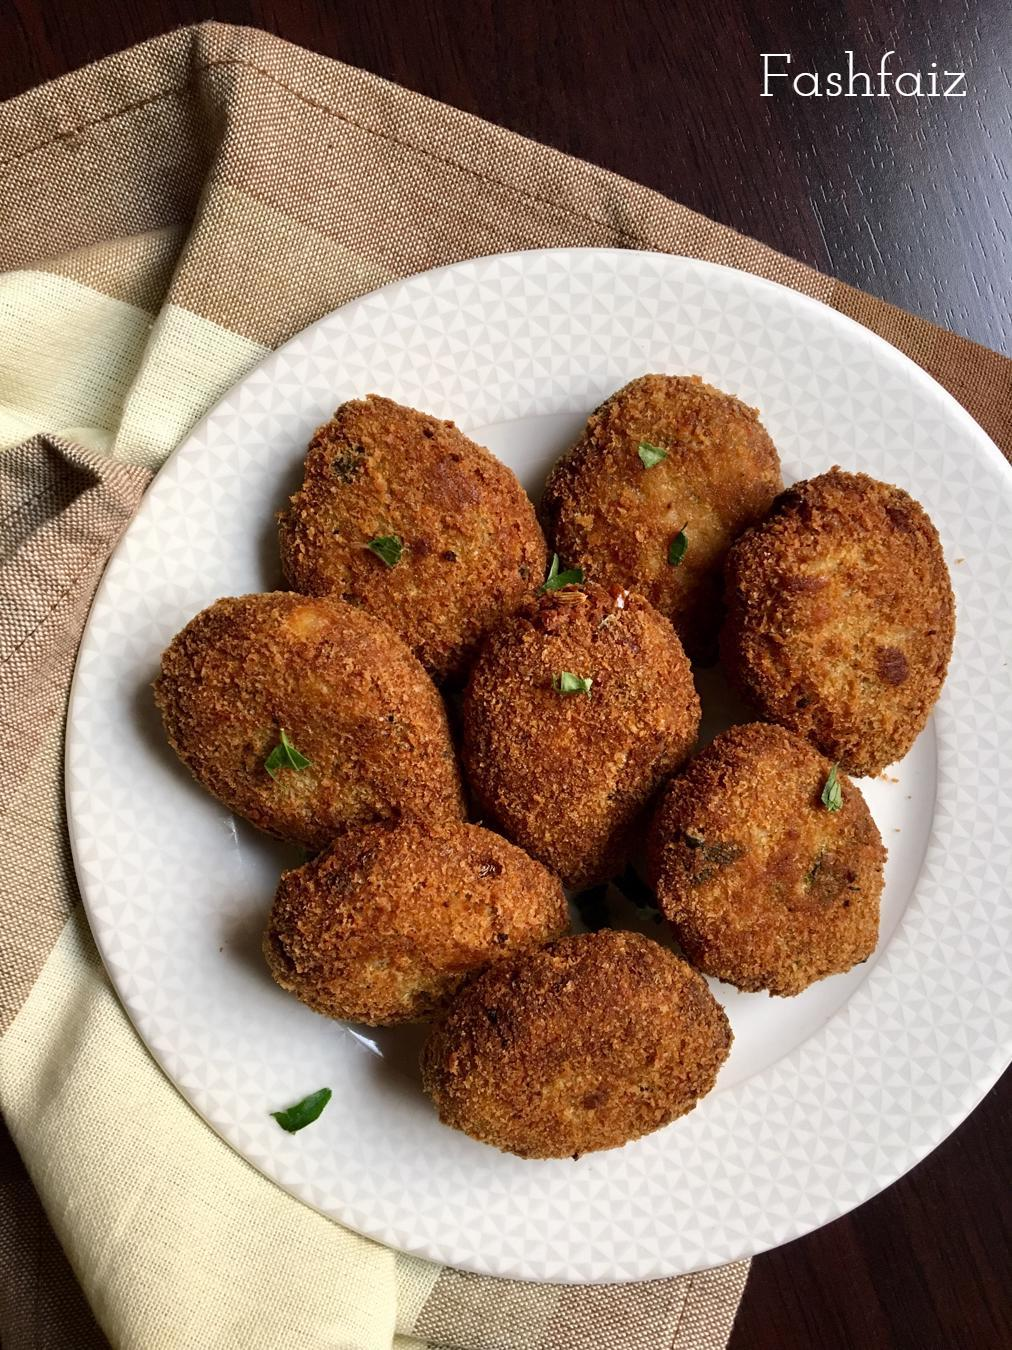 Make and freeze some Chicken Cutlets